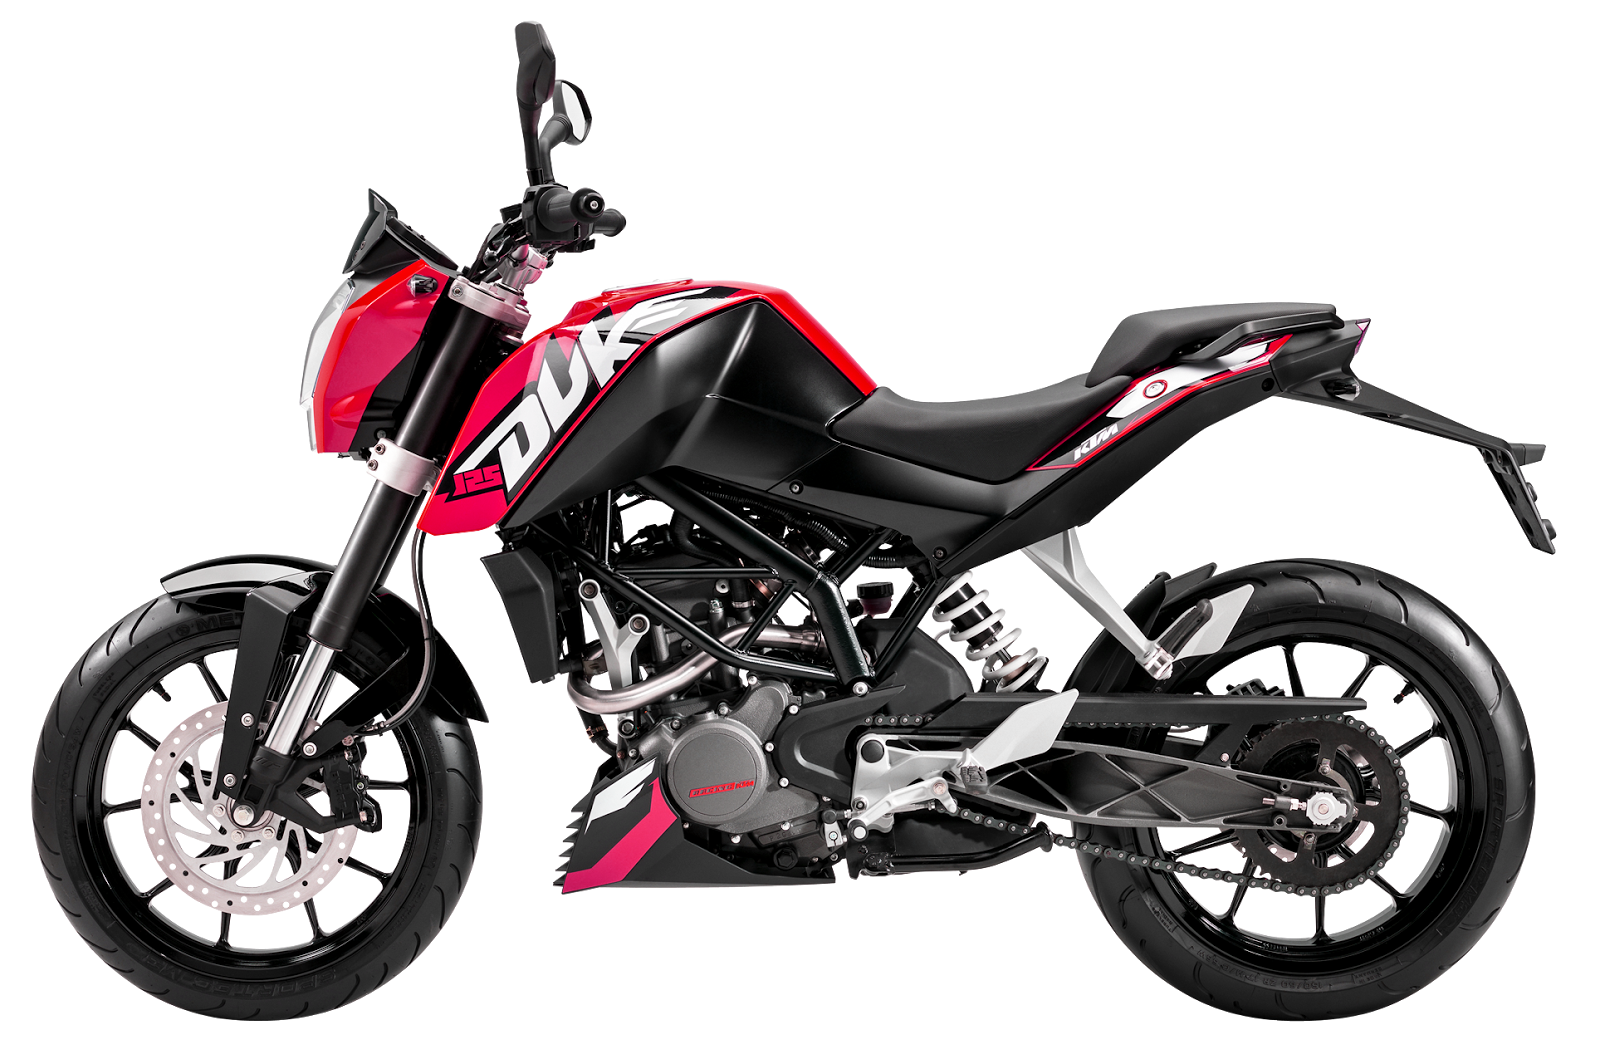 Ktm Duke Bike Png Download - PNG HD Bike